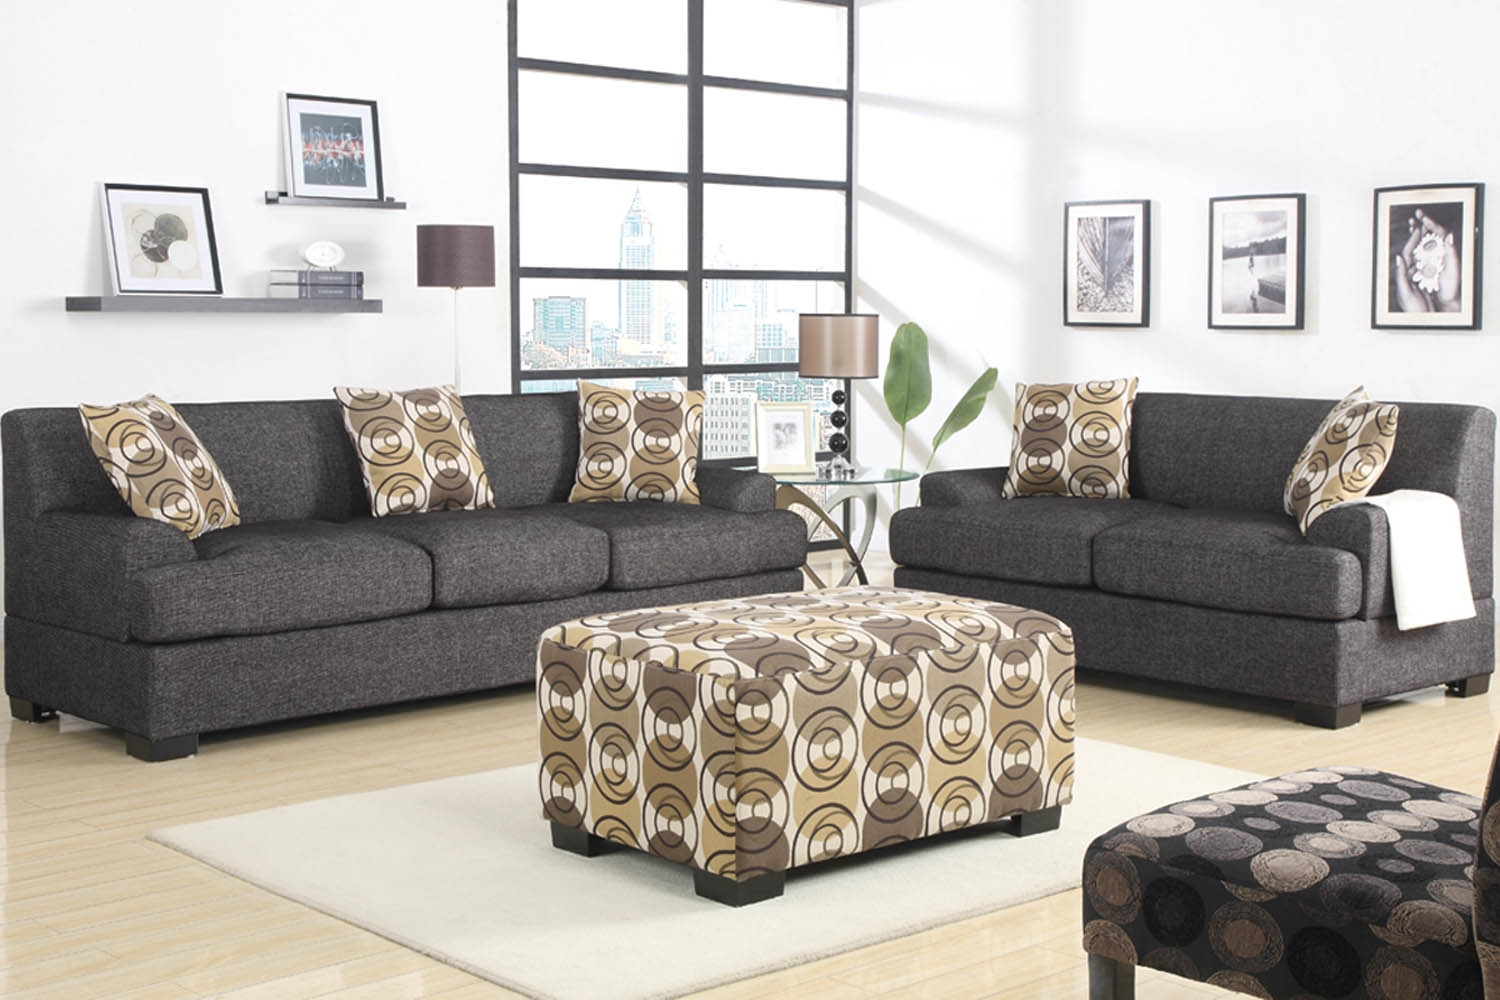 Charcoal Grey Sofa And Loveseat Hereo Sofa With Charcoal Grey Sofas (Image 5 of 15)